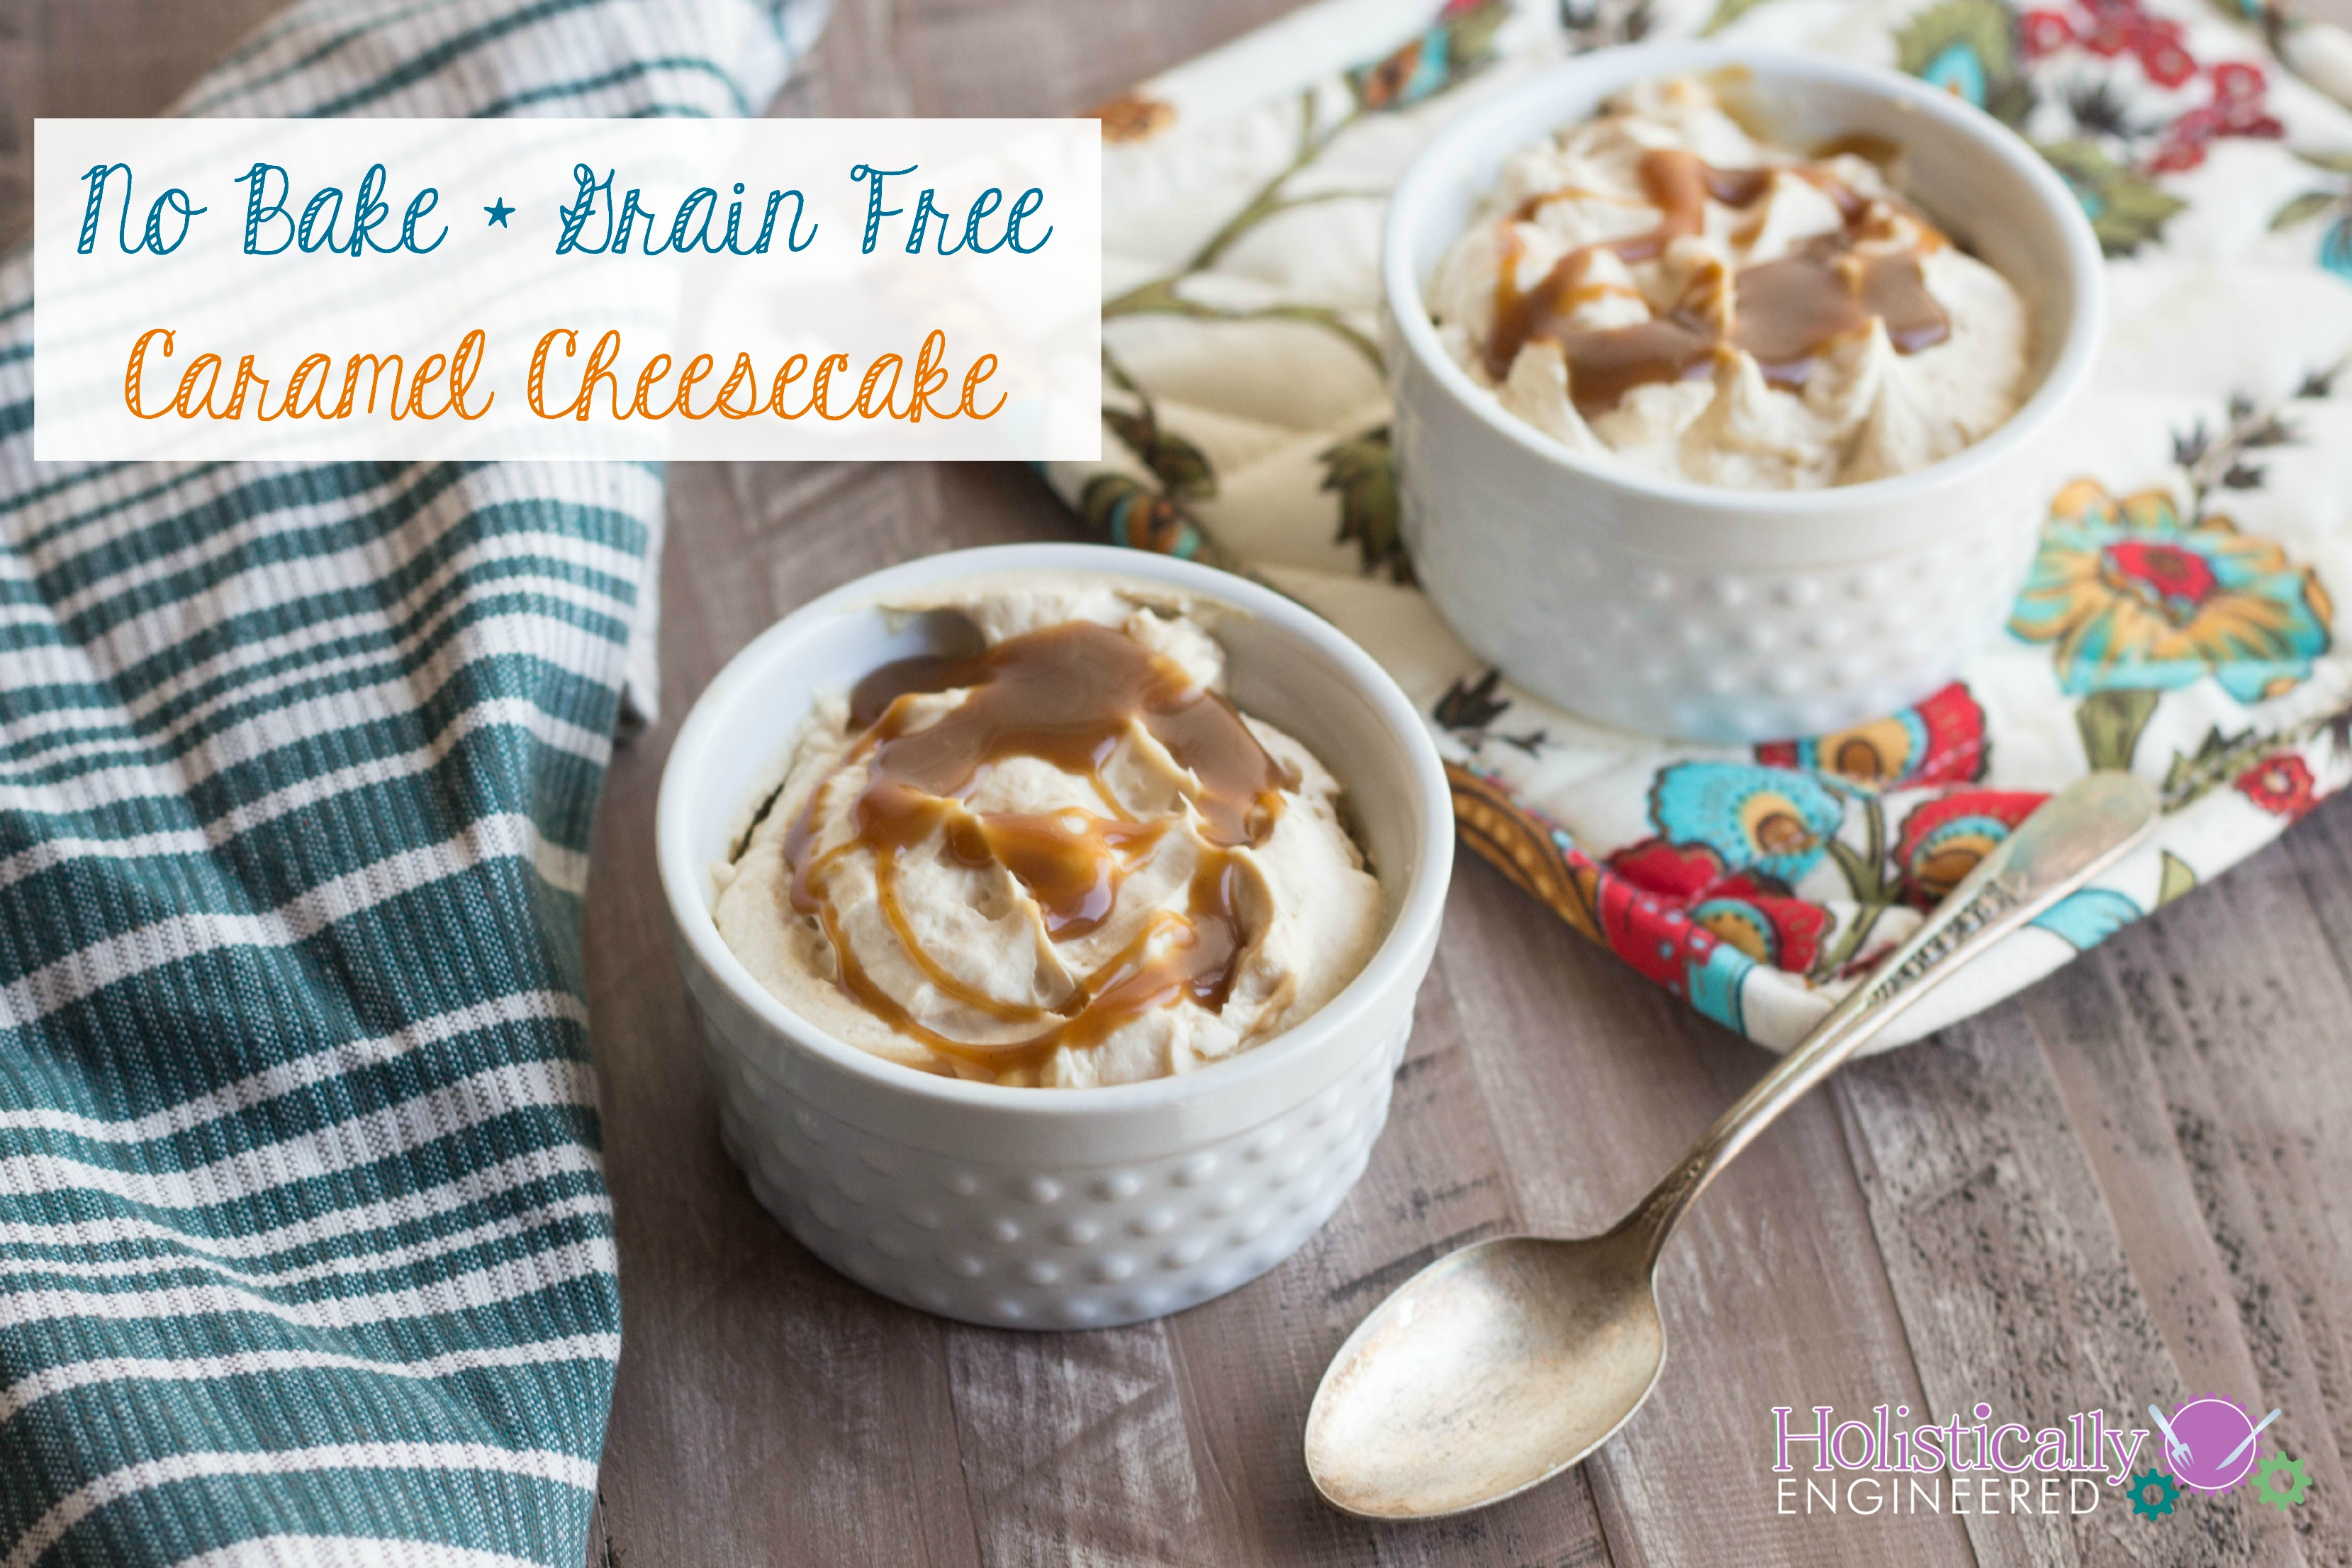 No Bake Grain Free Caramel Cheesecake_short